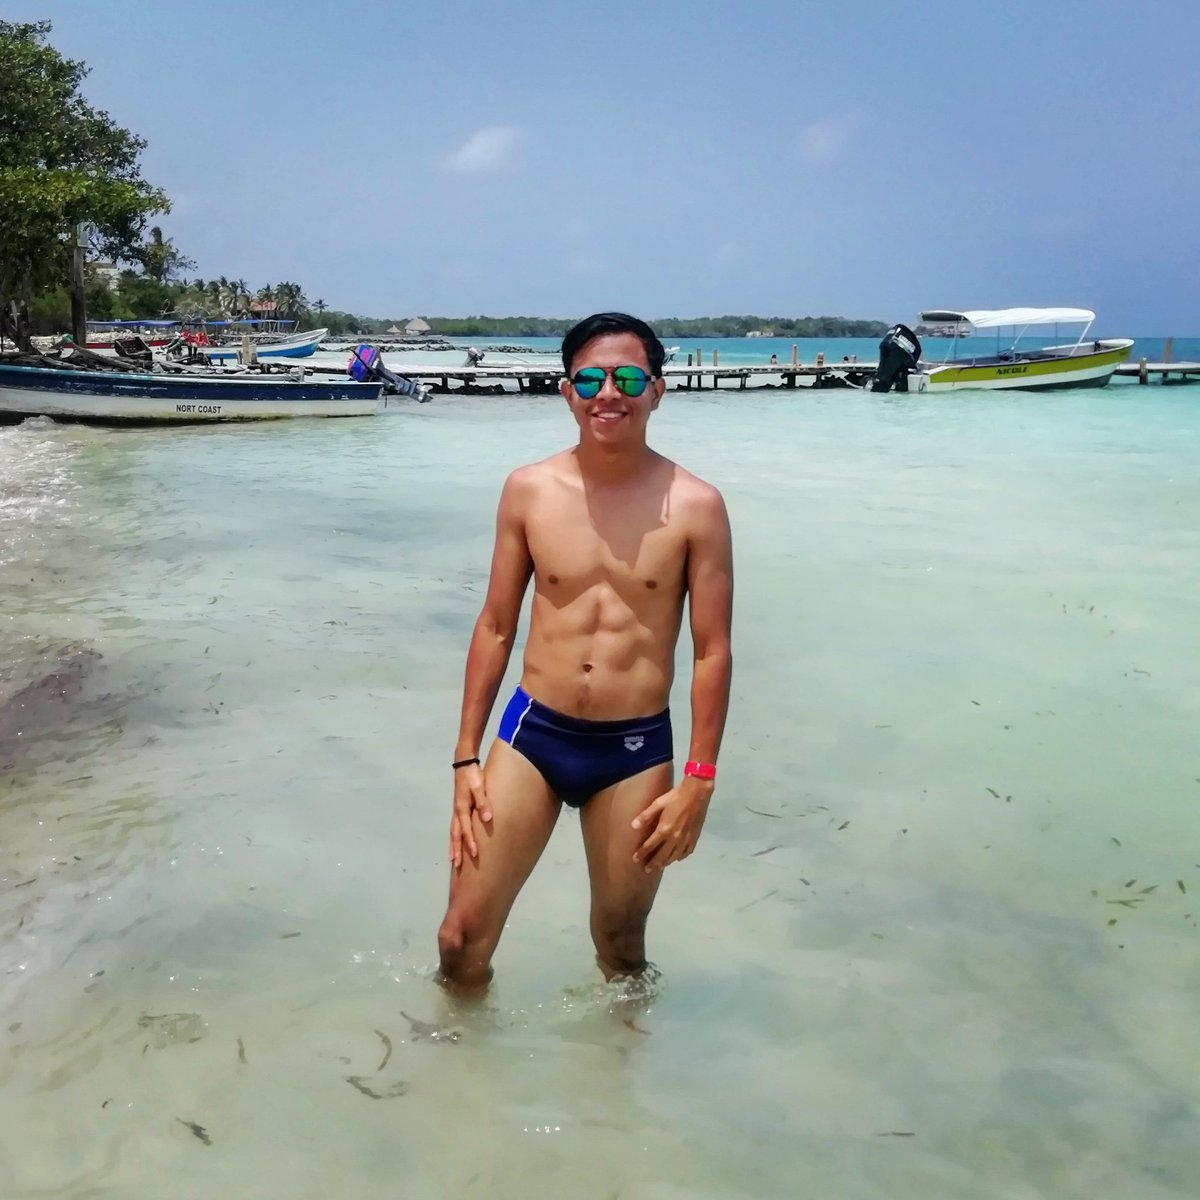 LIKE AND RETWEET #boy #young #gay #gaypride #gayman #gayboy #gayhot #photooftheday  #beautiful #cute #picoftheday #art  #photography  #photo #beauty #pretty  #cool #TFlers #picture #Pride2020 #sexy